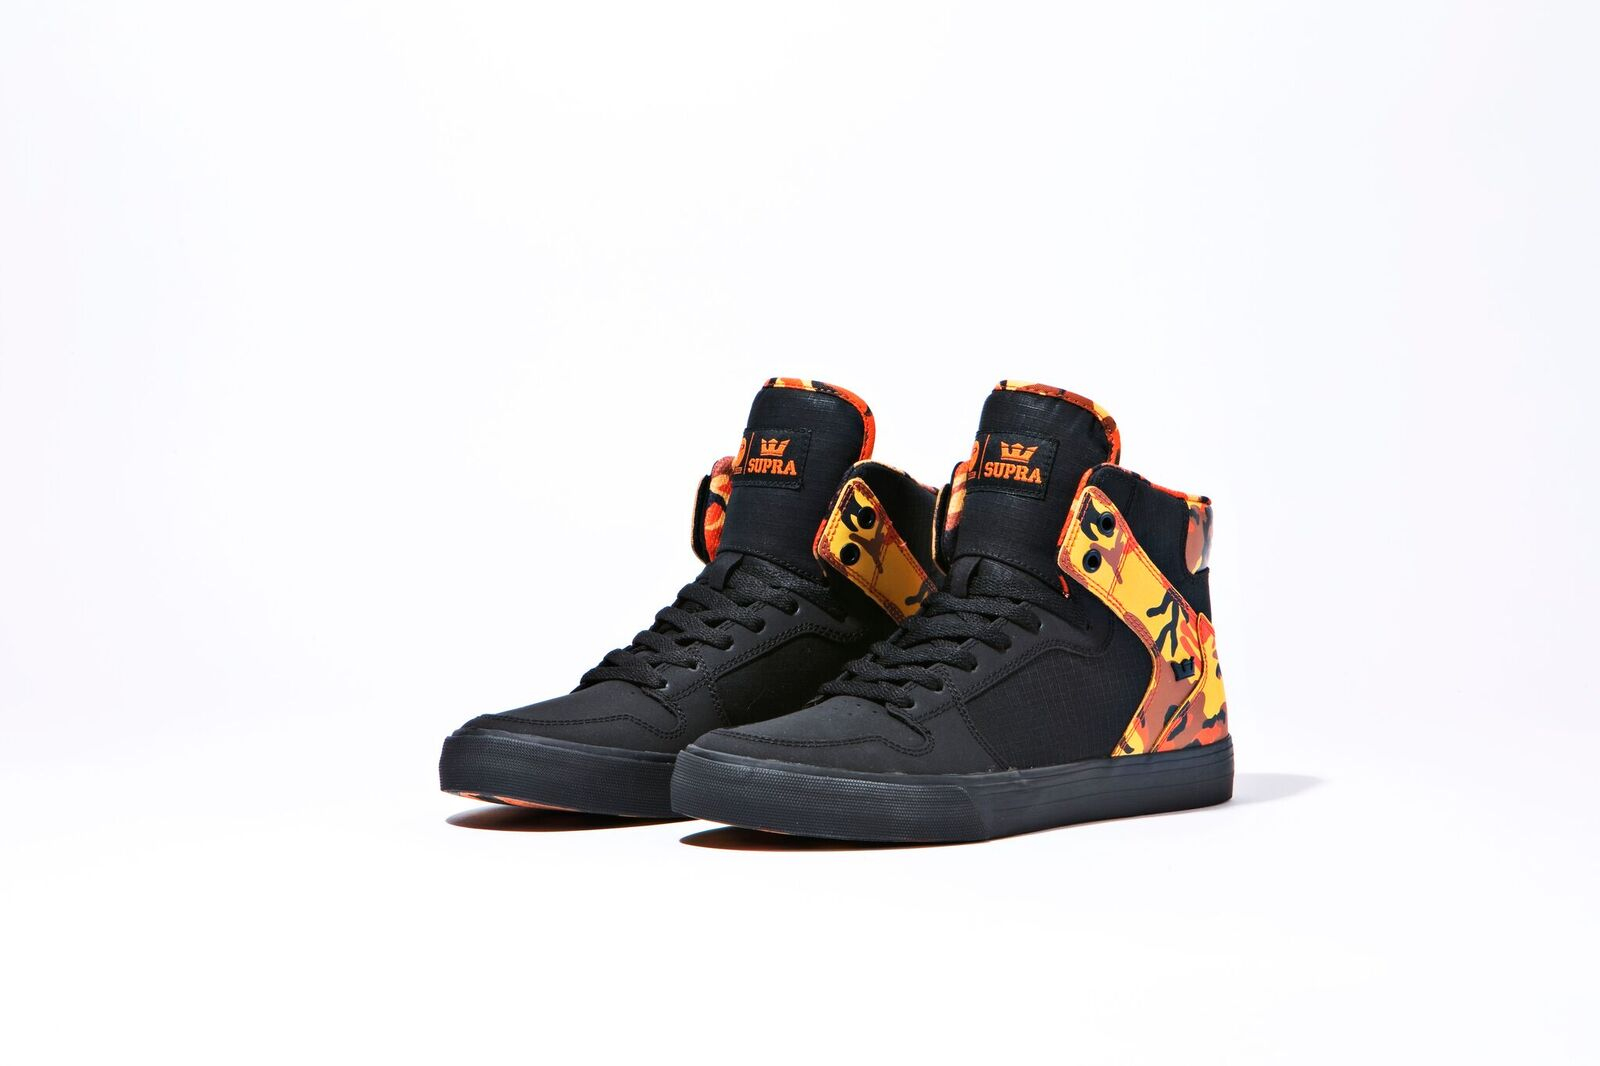 aece5a52d01 The SUPRA x Rothco collection will be available exclusively through ZUMIEZ  locations and online, so go shop the Vadier right now for $99.95 USD, ...